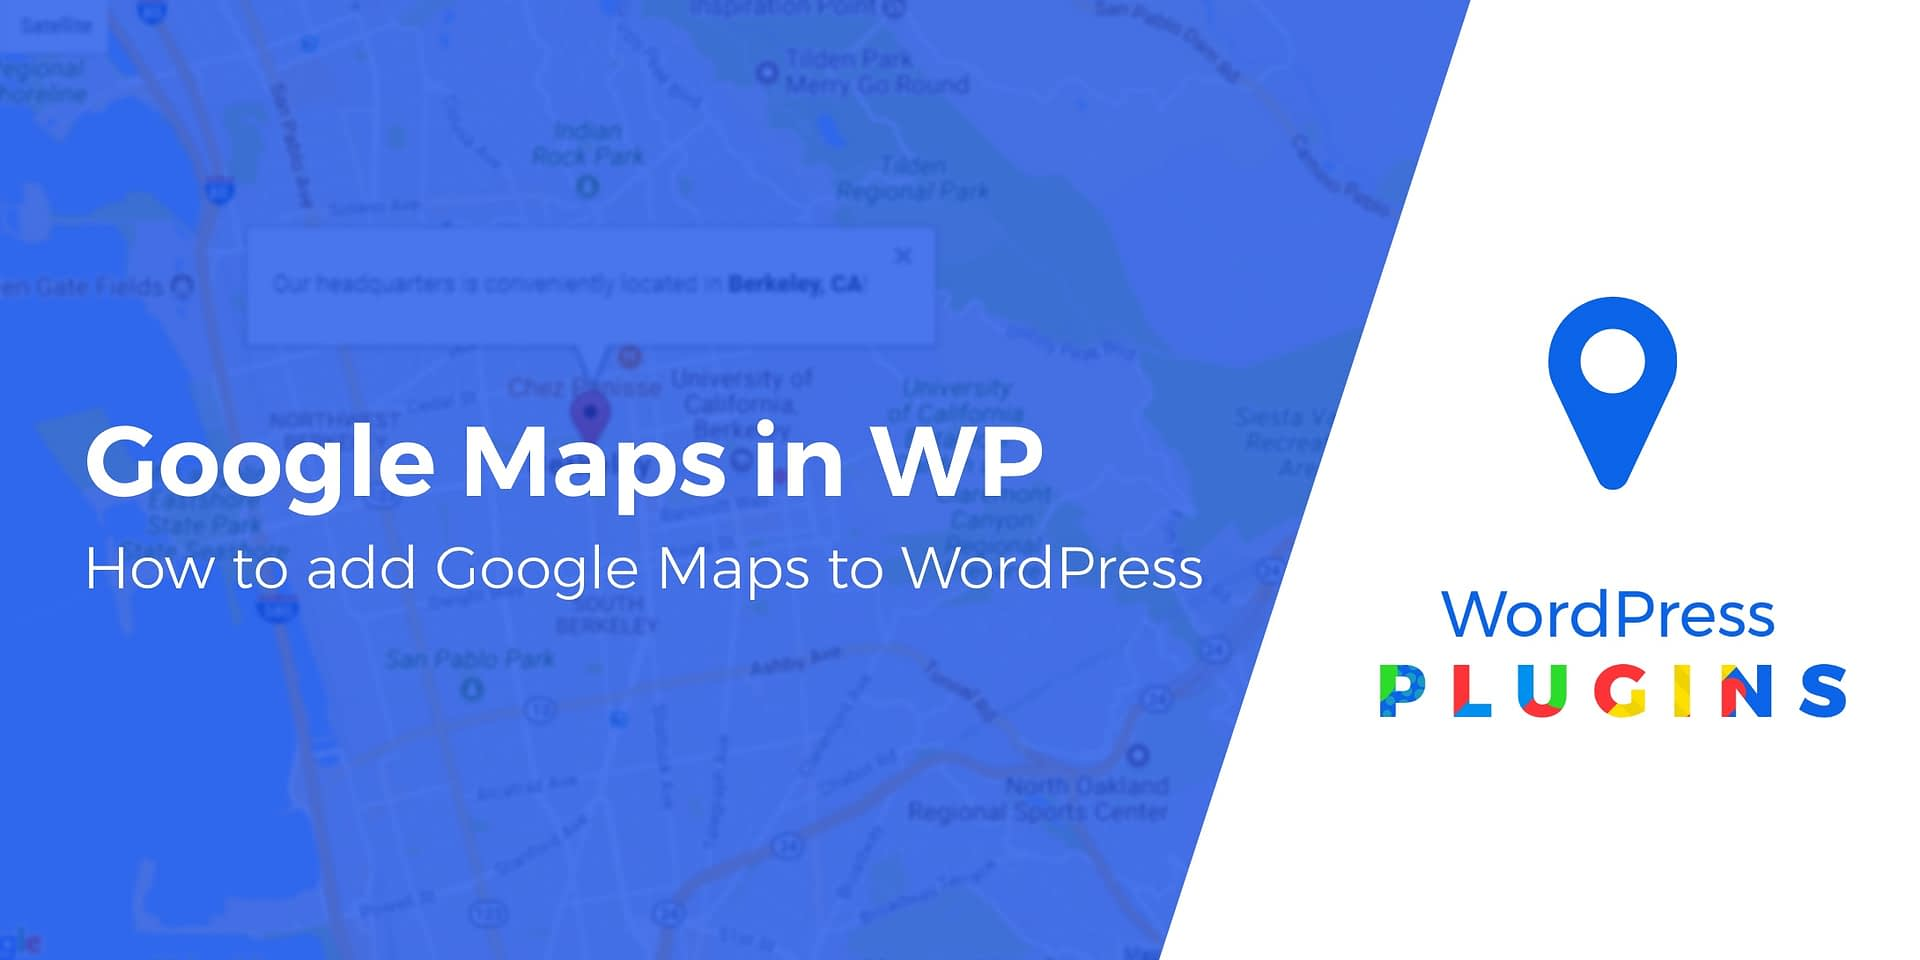 How to Add Google Maps to WordPress (Beginner's Guide)